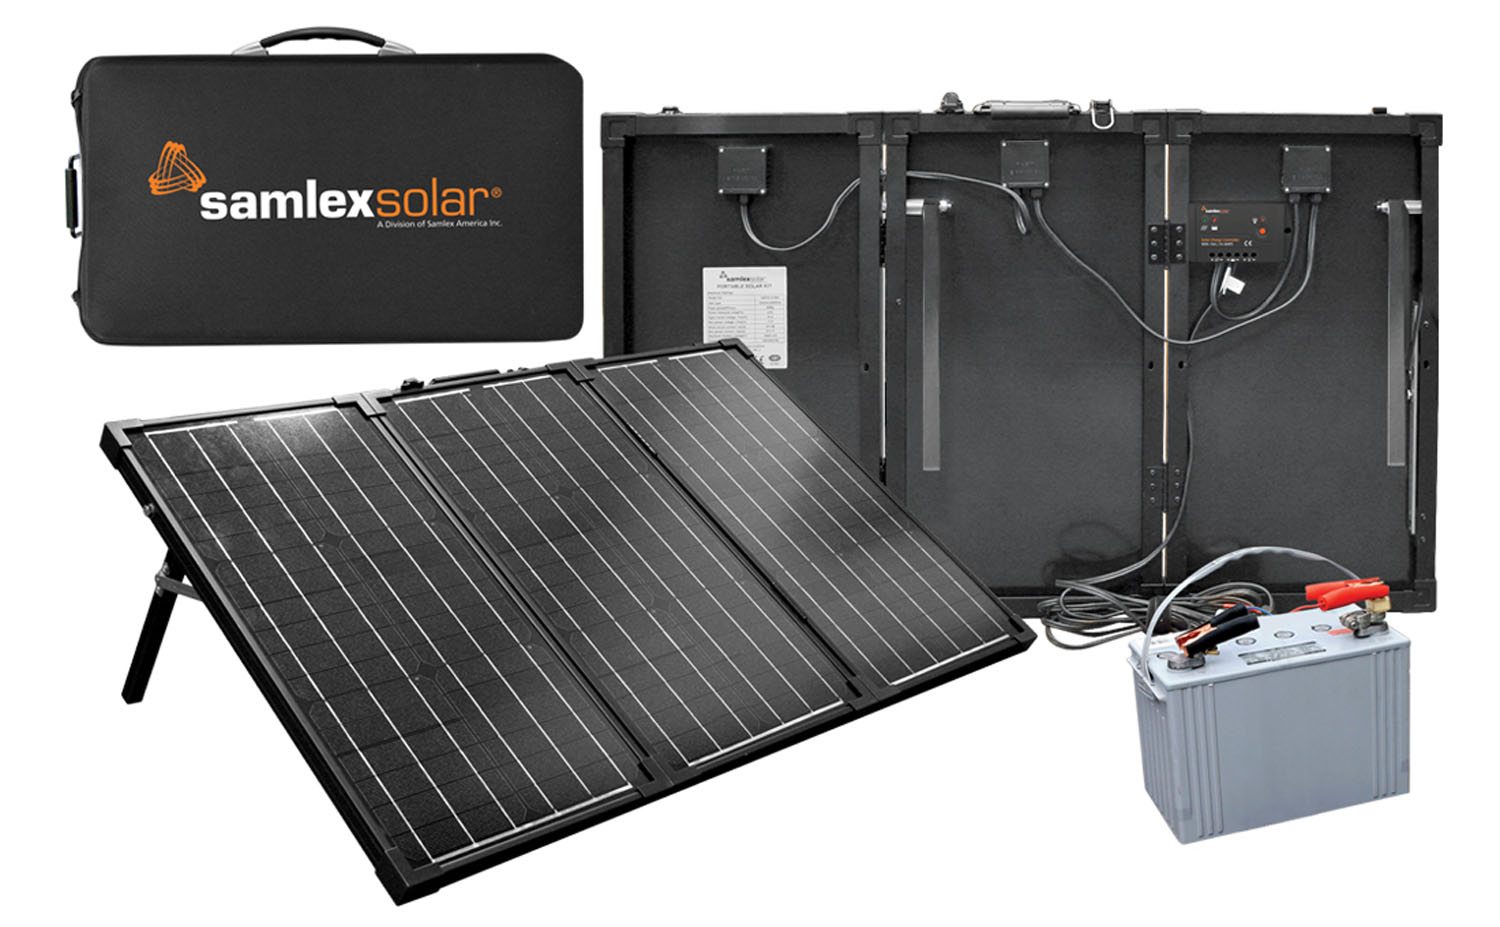 MSK135 - Samlex 135 Watt Portable Solar Charging Kit